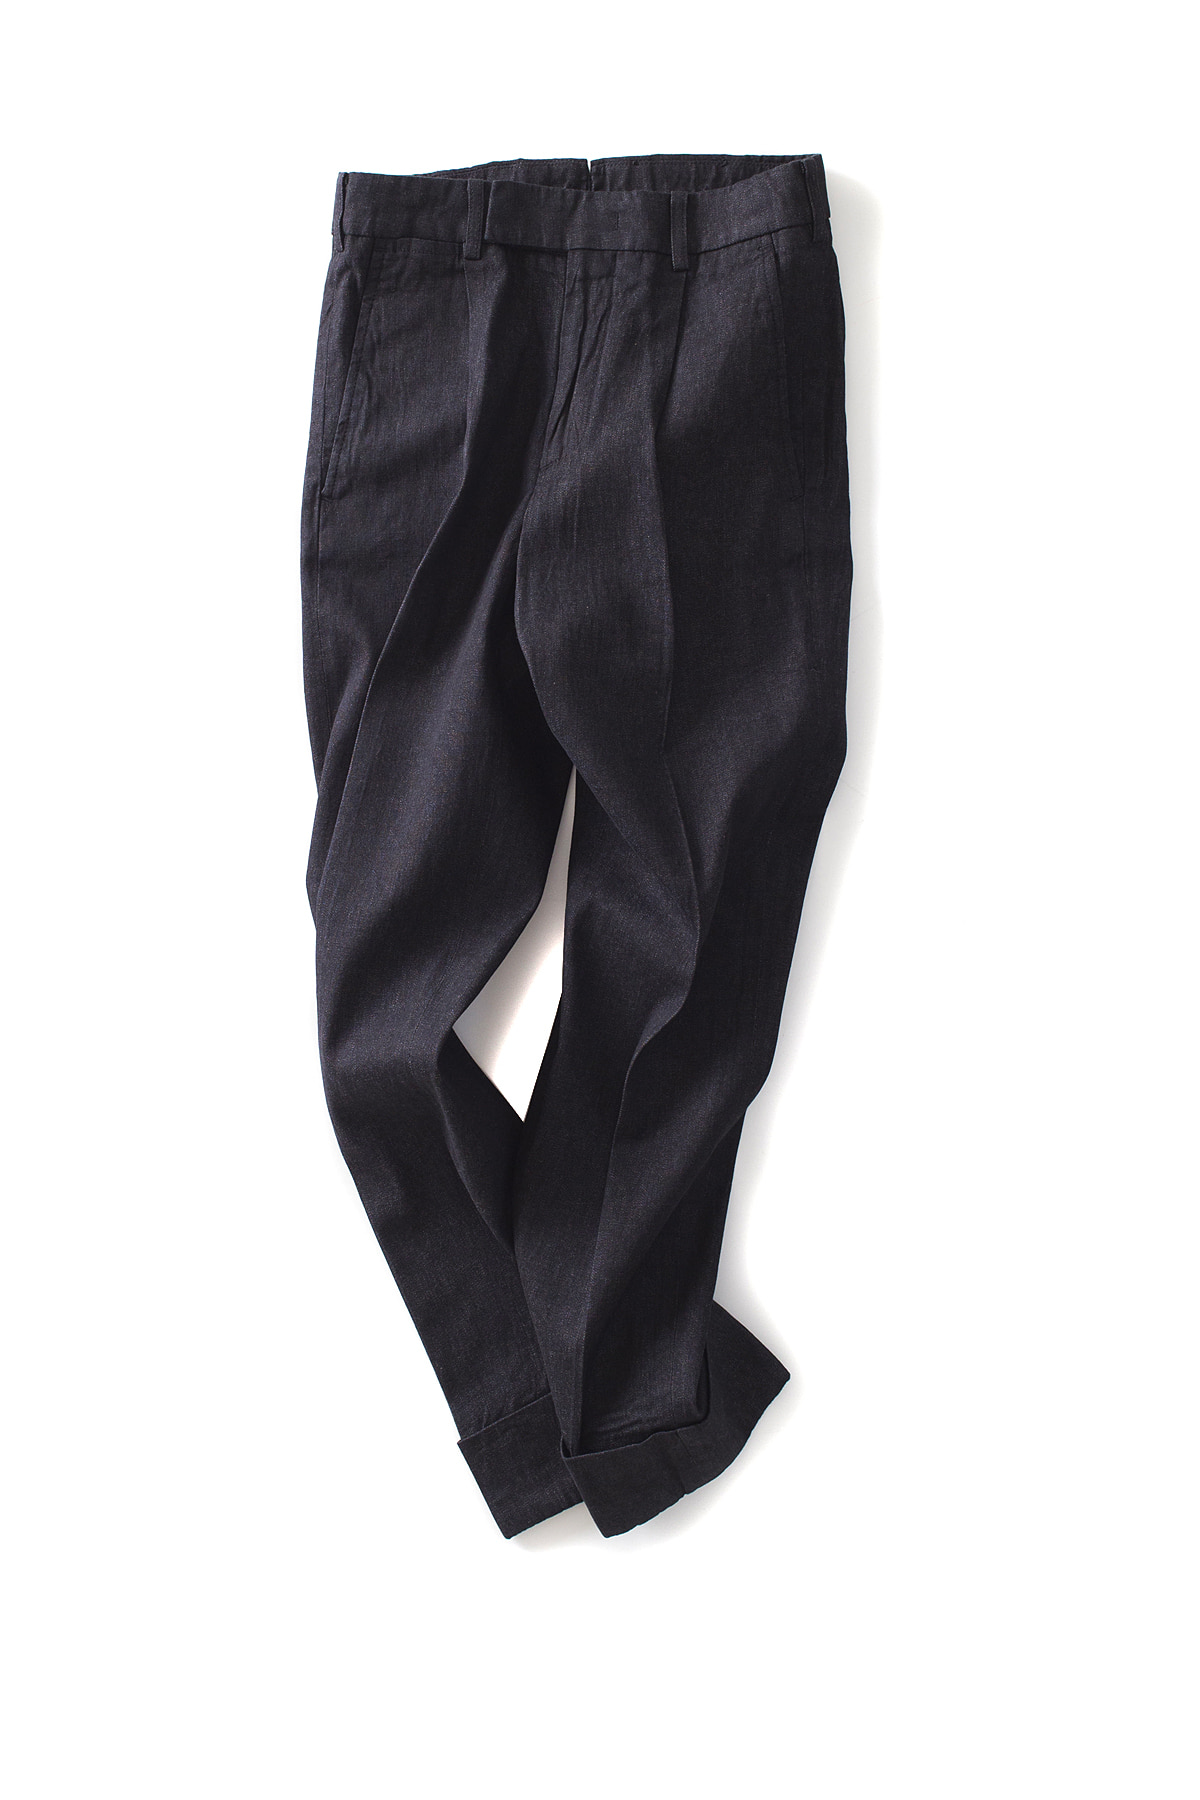 IKHENATON : Denim 1-Tuck Pants (Black)